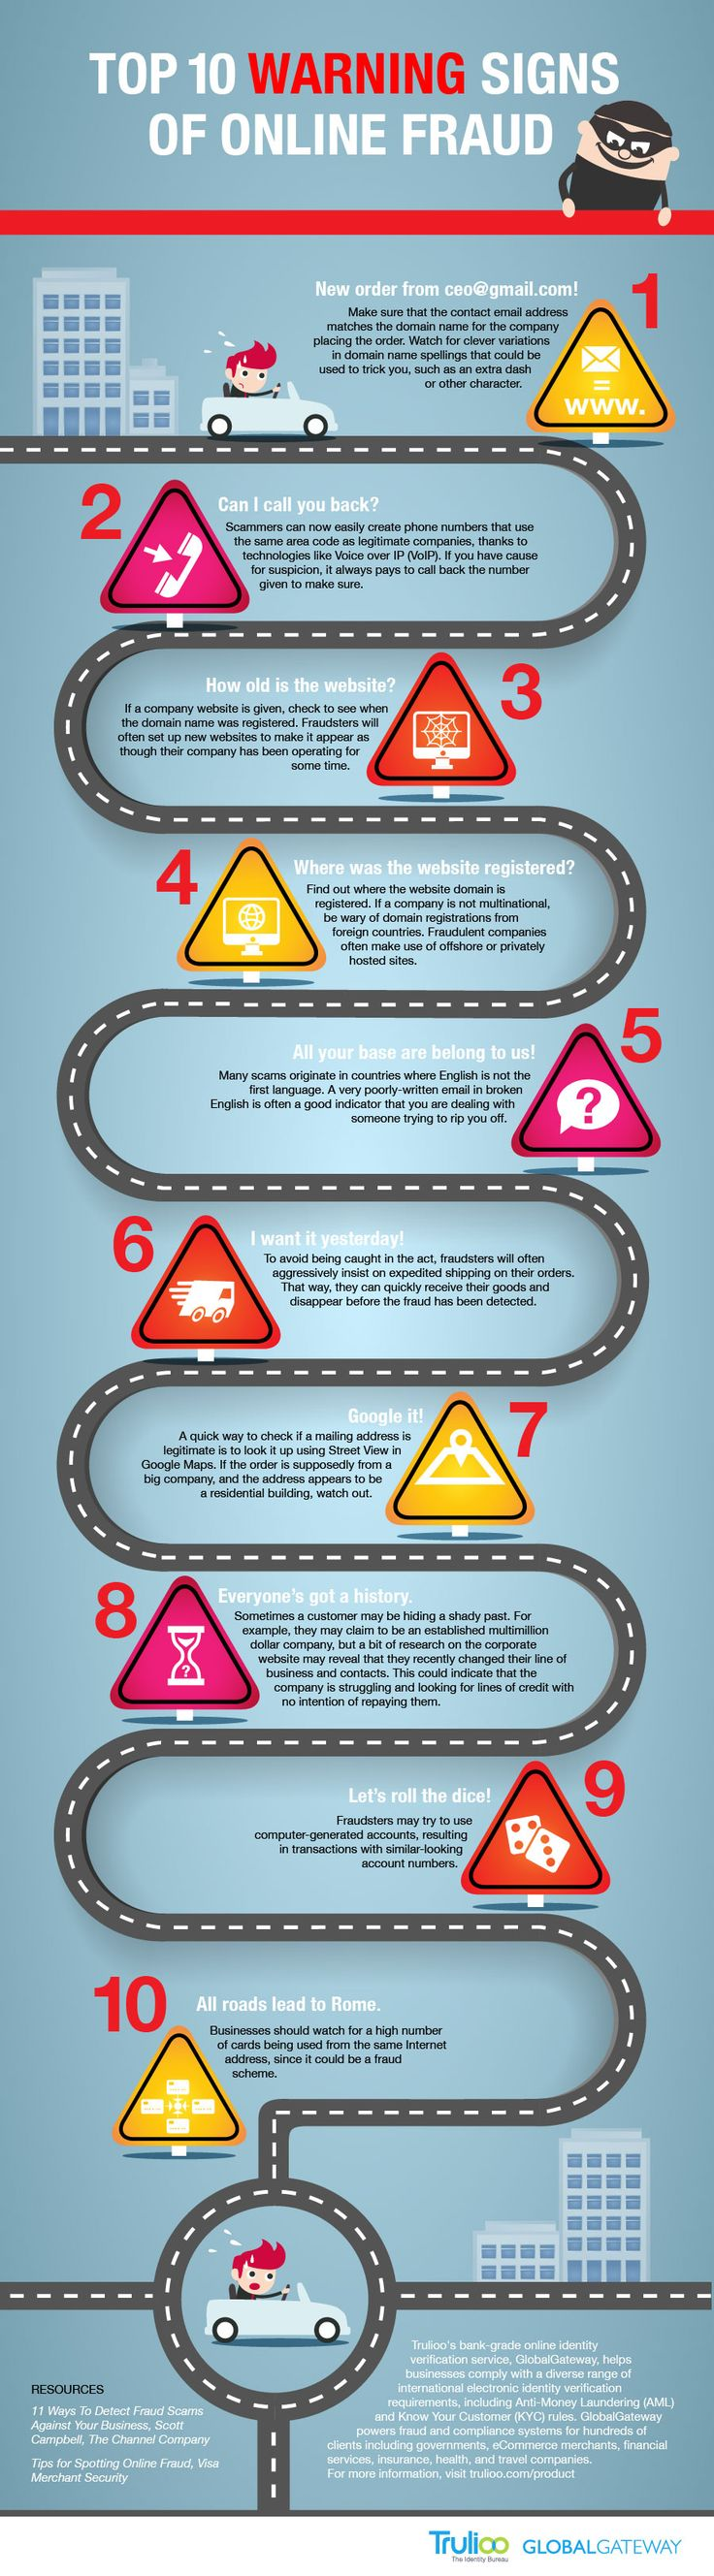 Top 10 Warning Signs of Online Fraud - Infographic by @Trulioo #list